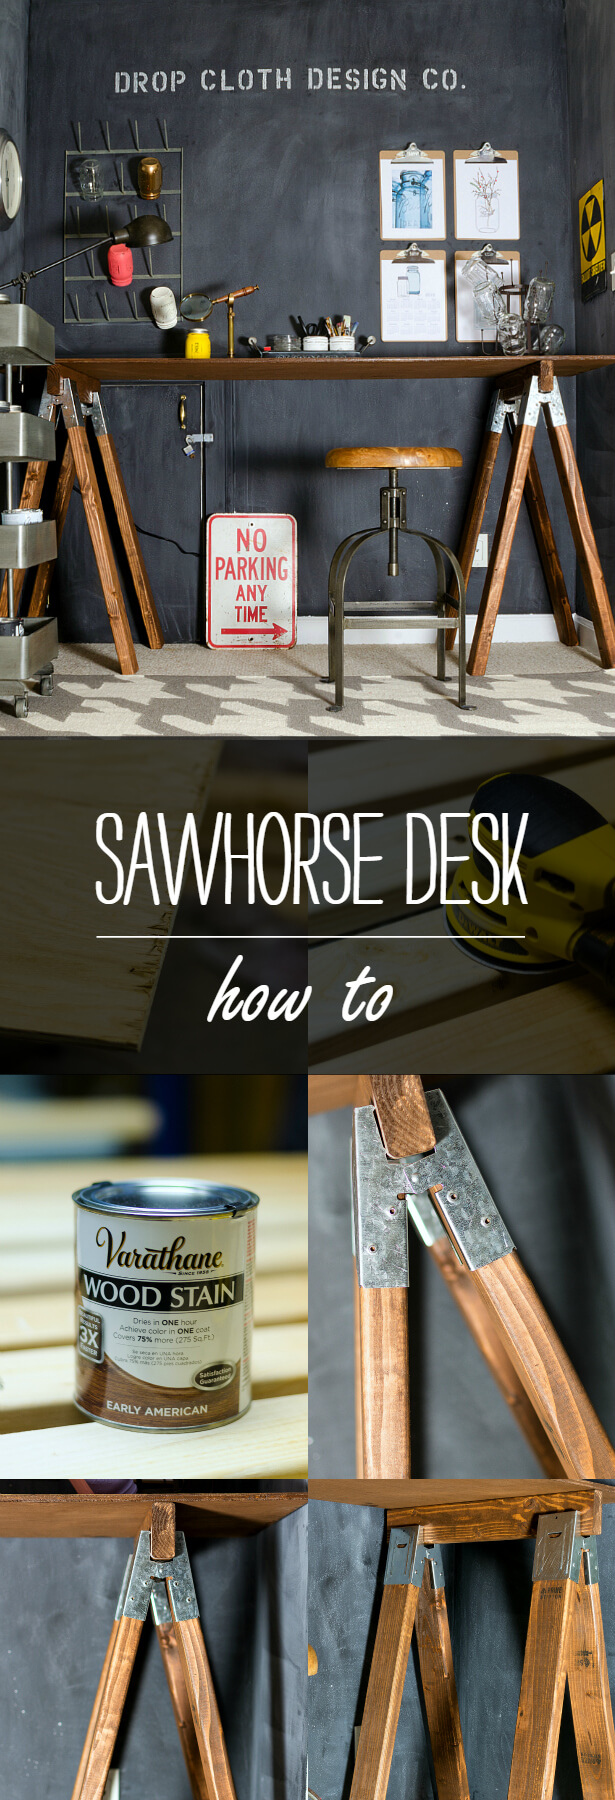 Make Your Own Desk with Sawhorses